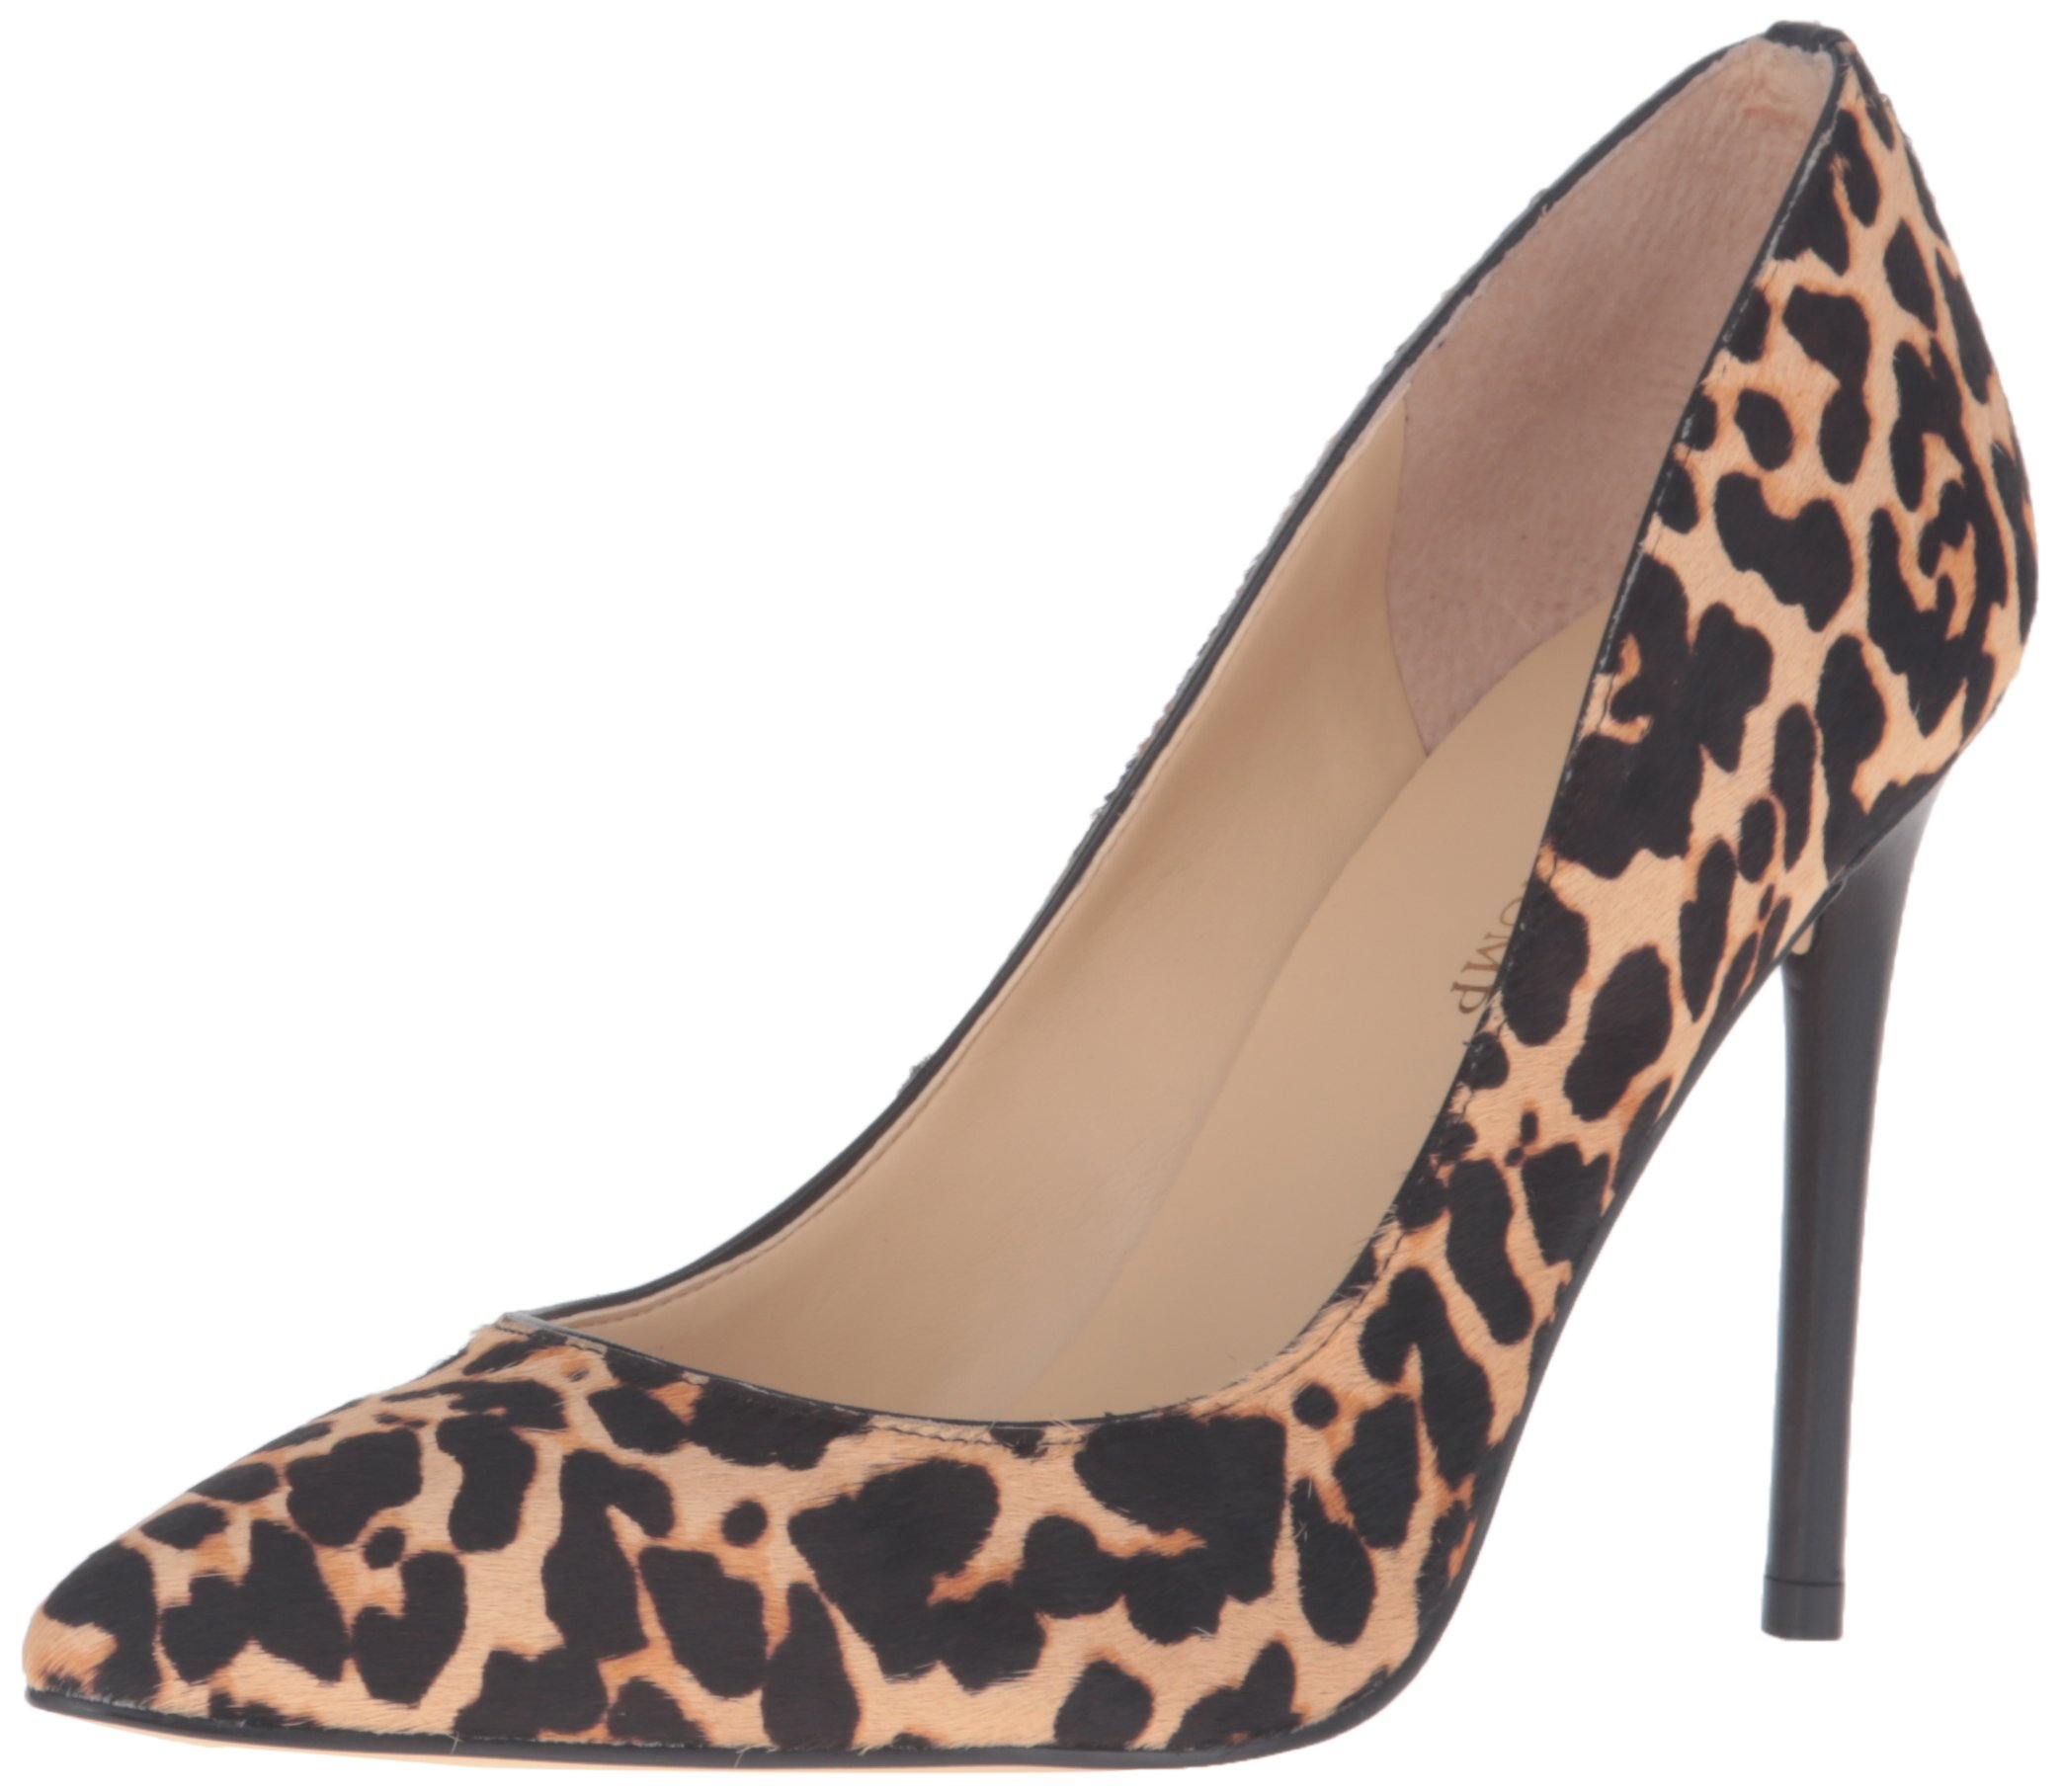 Ivanka Trump Women's Kaydenly Pump, Natural Multi Animal Print, 11 M US